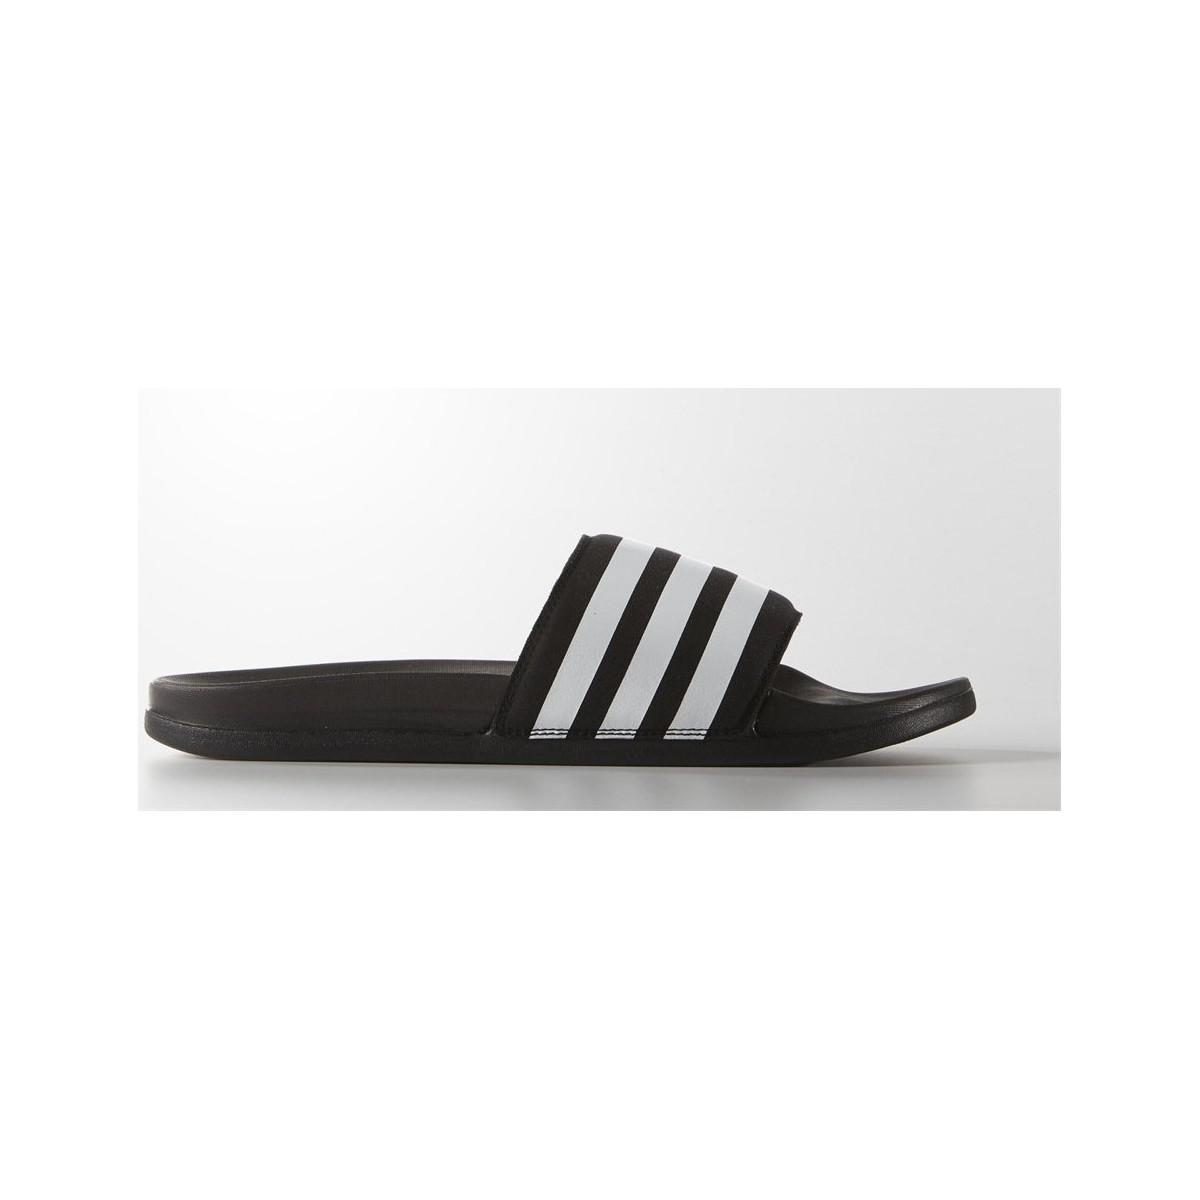 e037ecdee38dc Adidas Adilette Supercloud Plus Men s Mules   Casual Shoes In Black ...